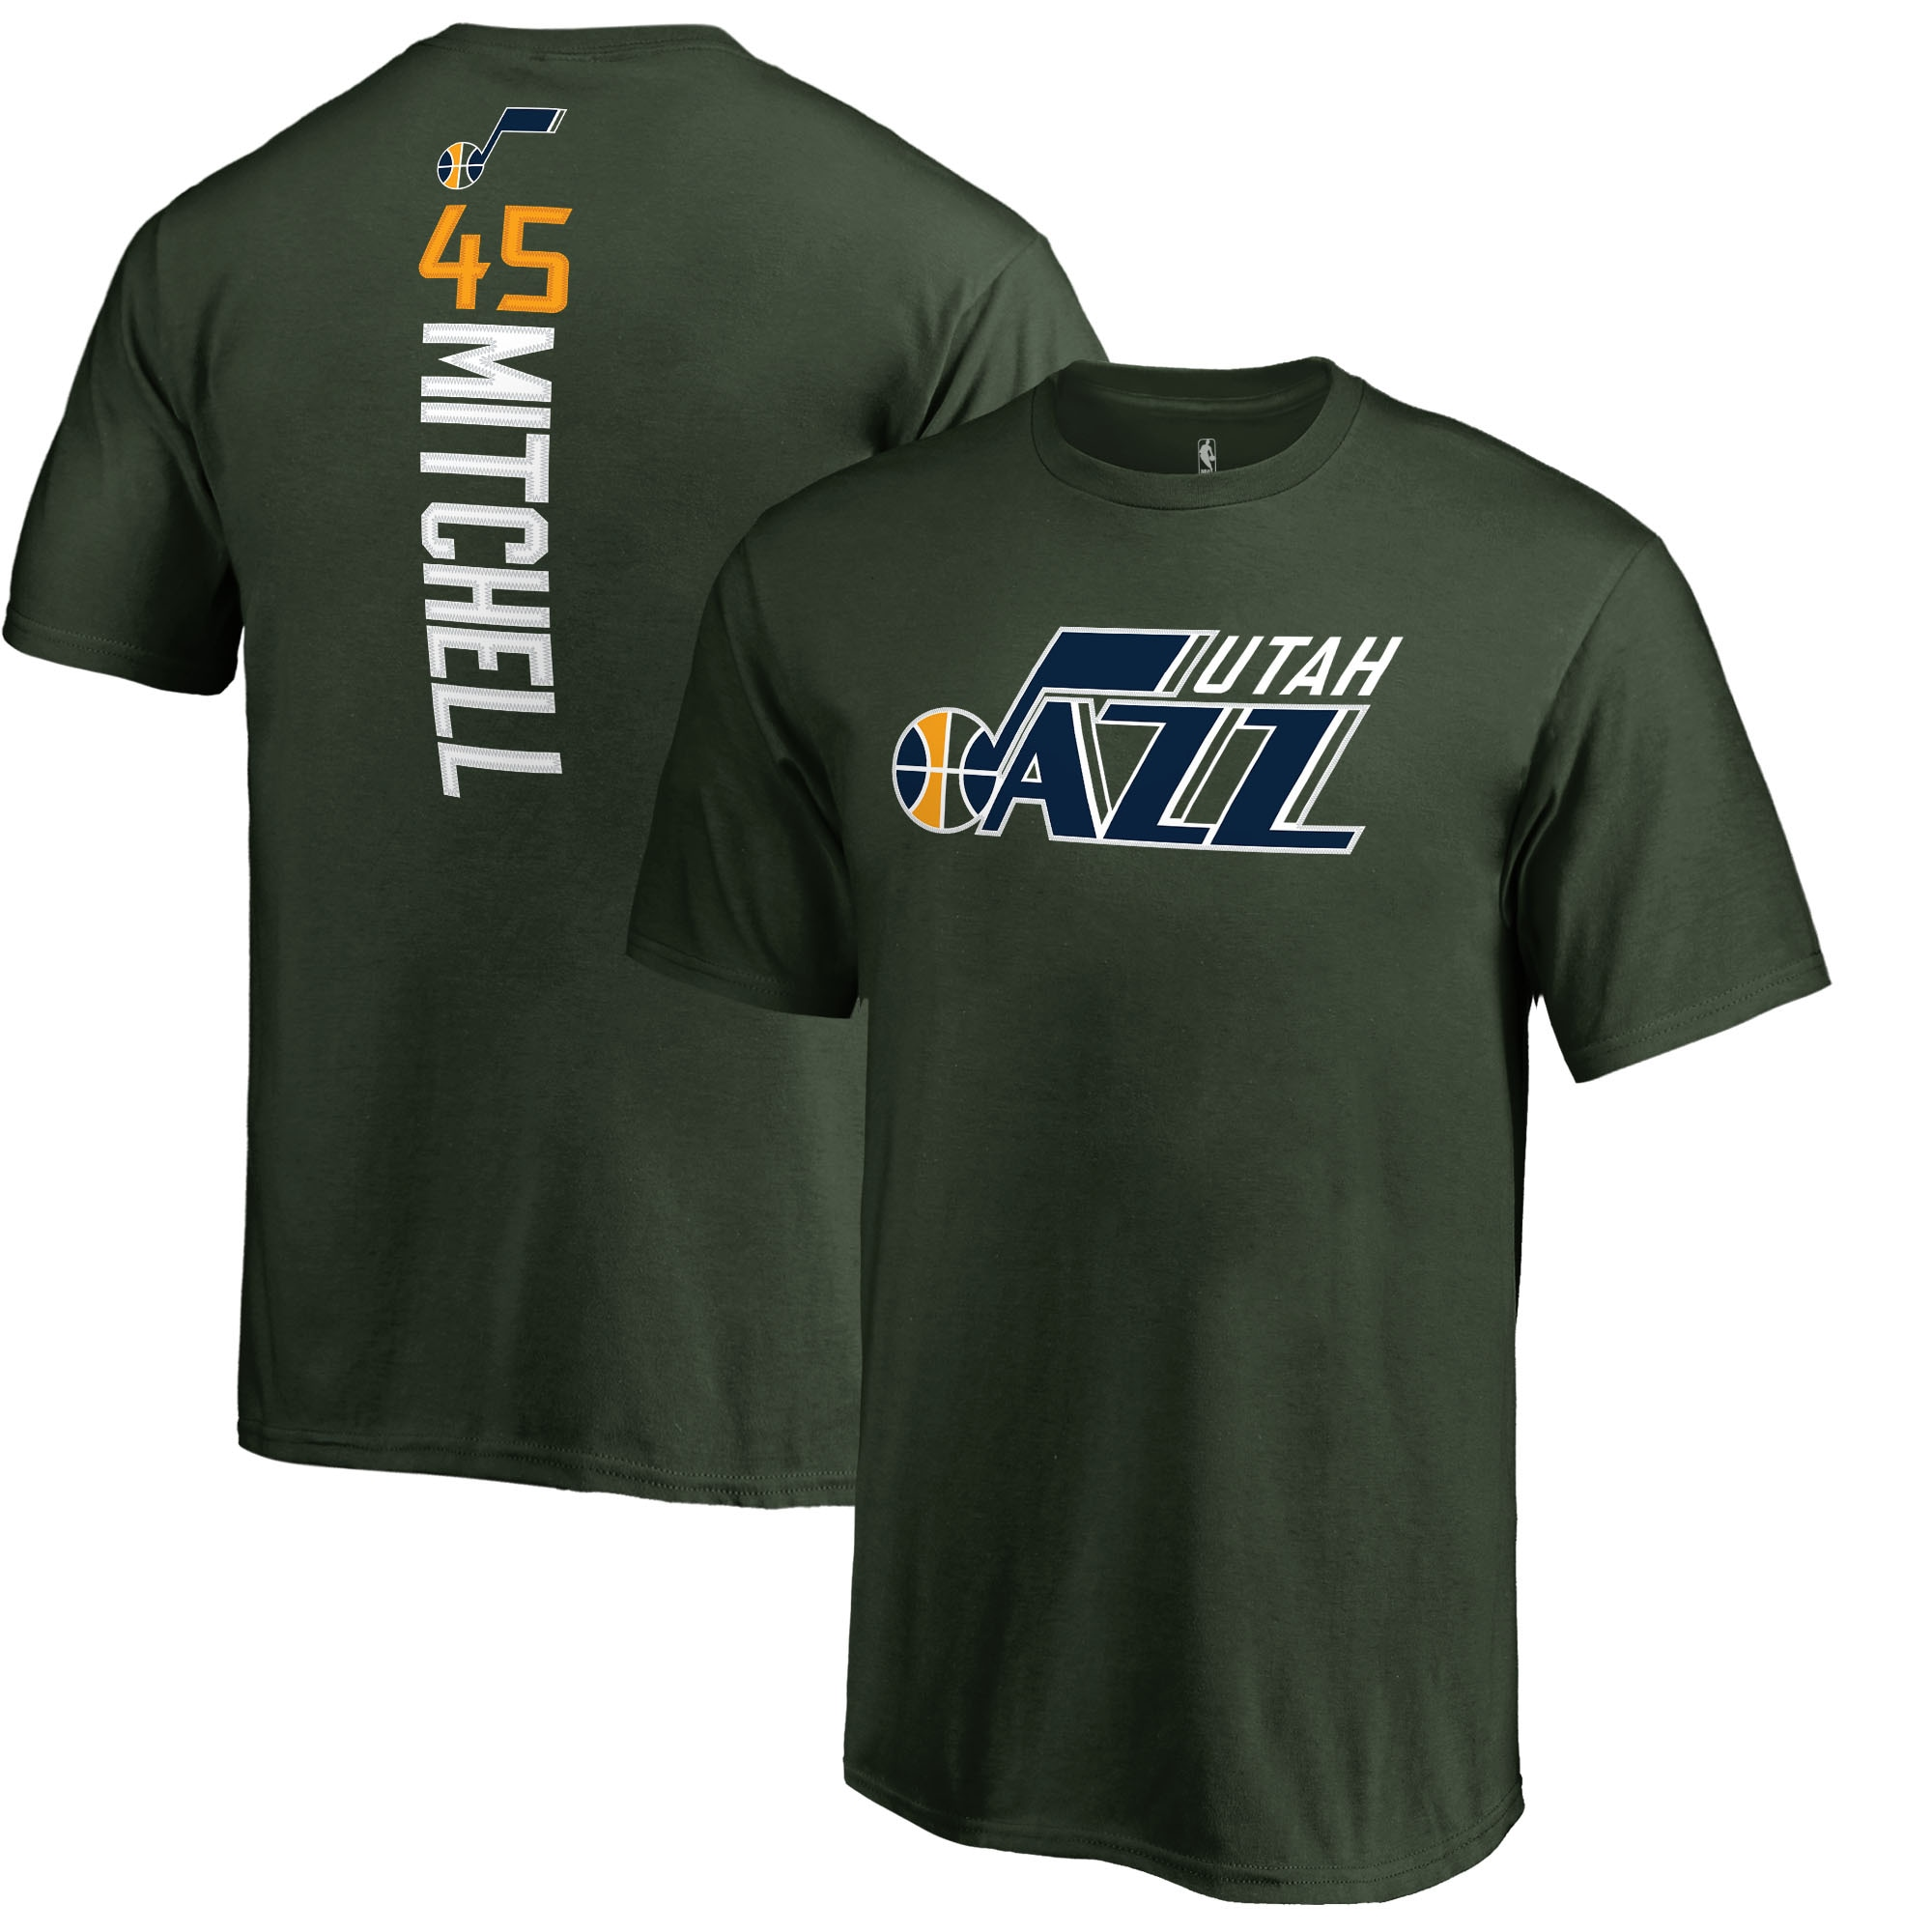 Donovan Mitchell Utah Jazz Fanatics Branded Youth Team Backer Name & Number T-Shirt - Green